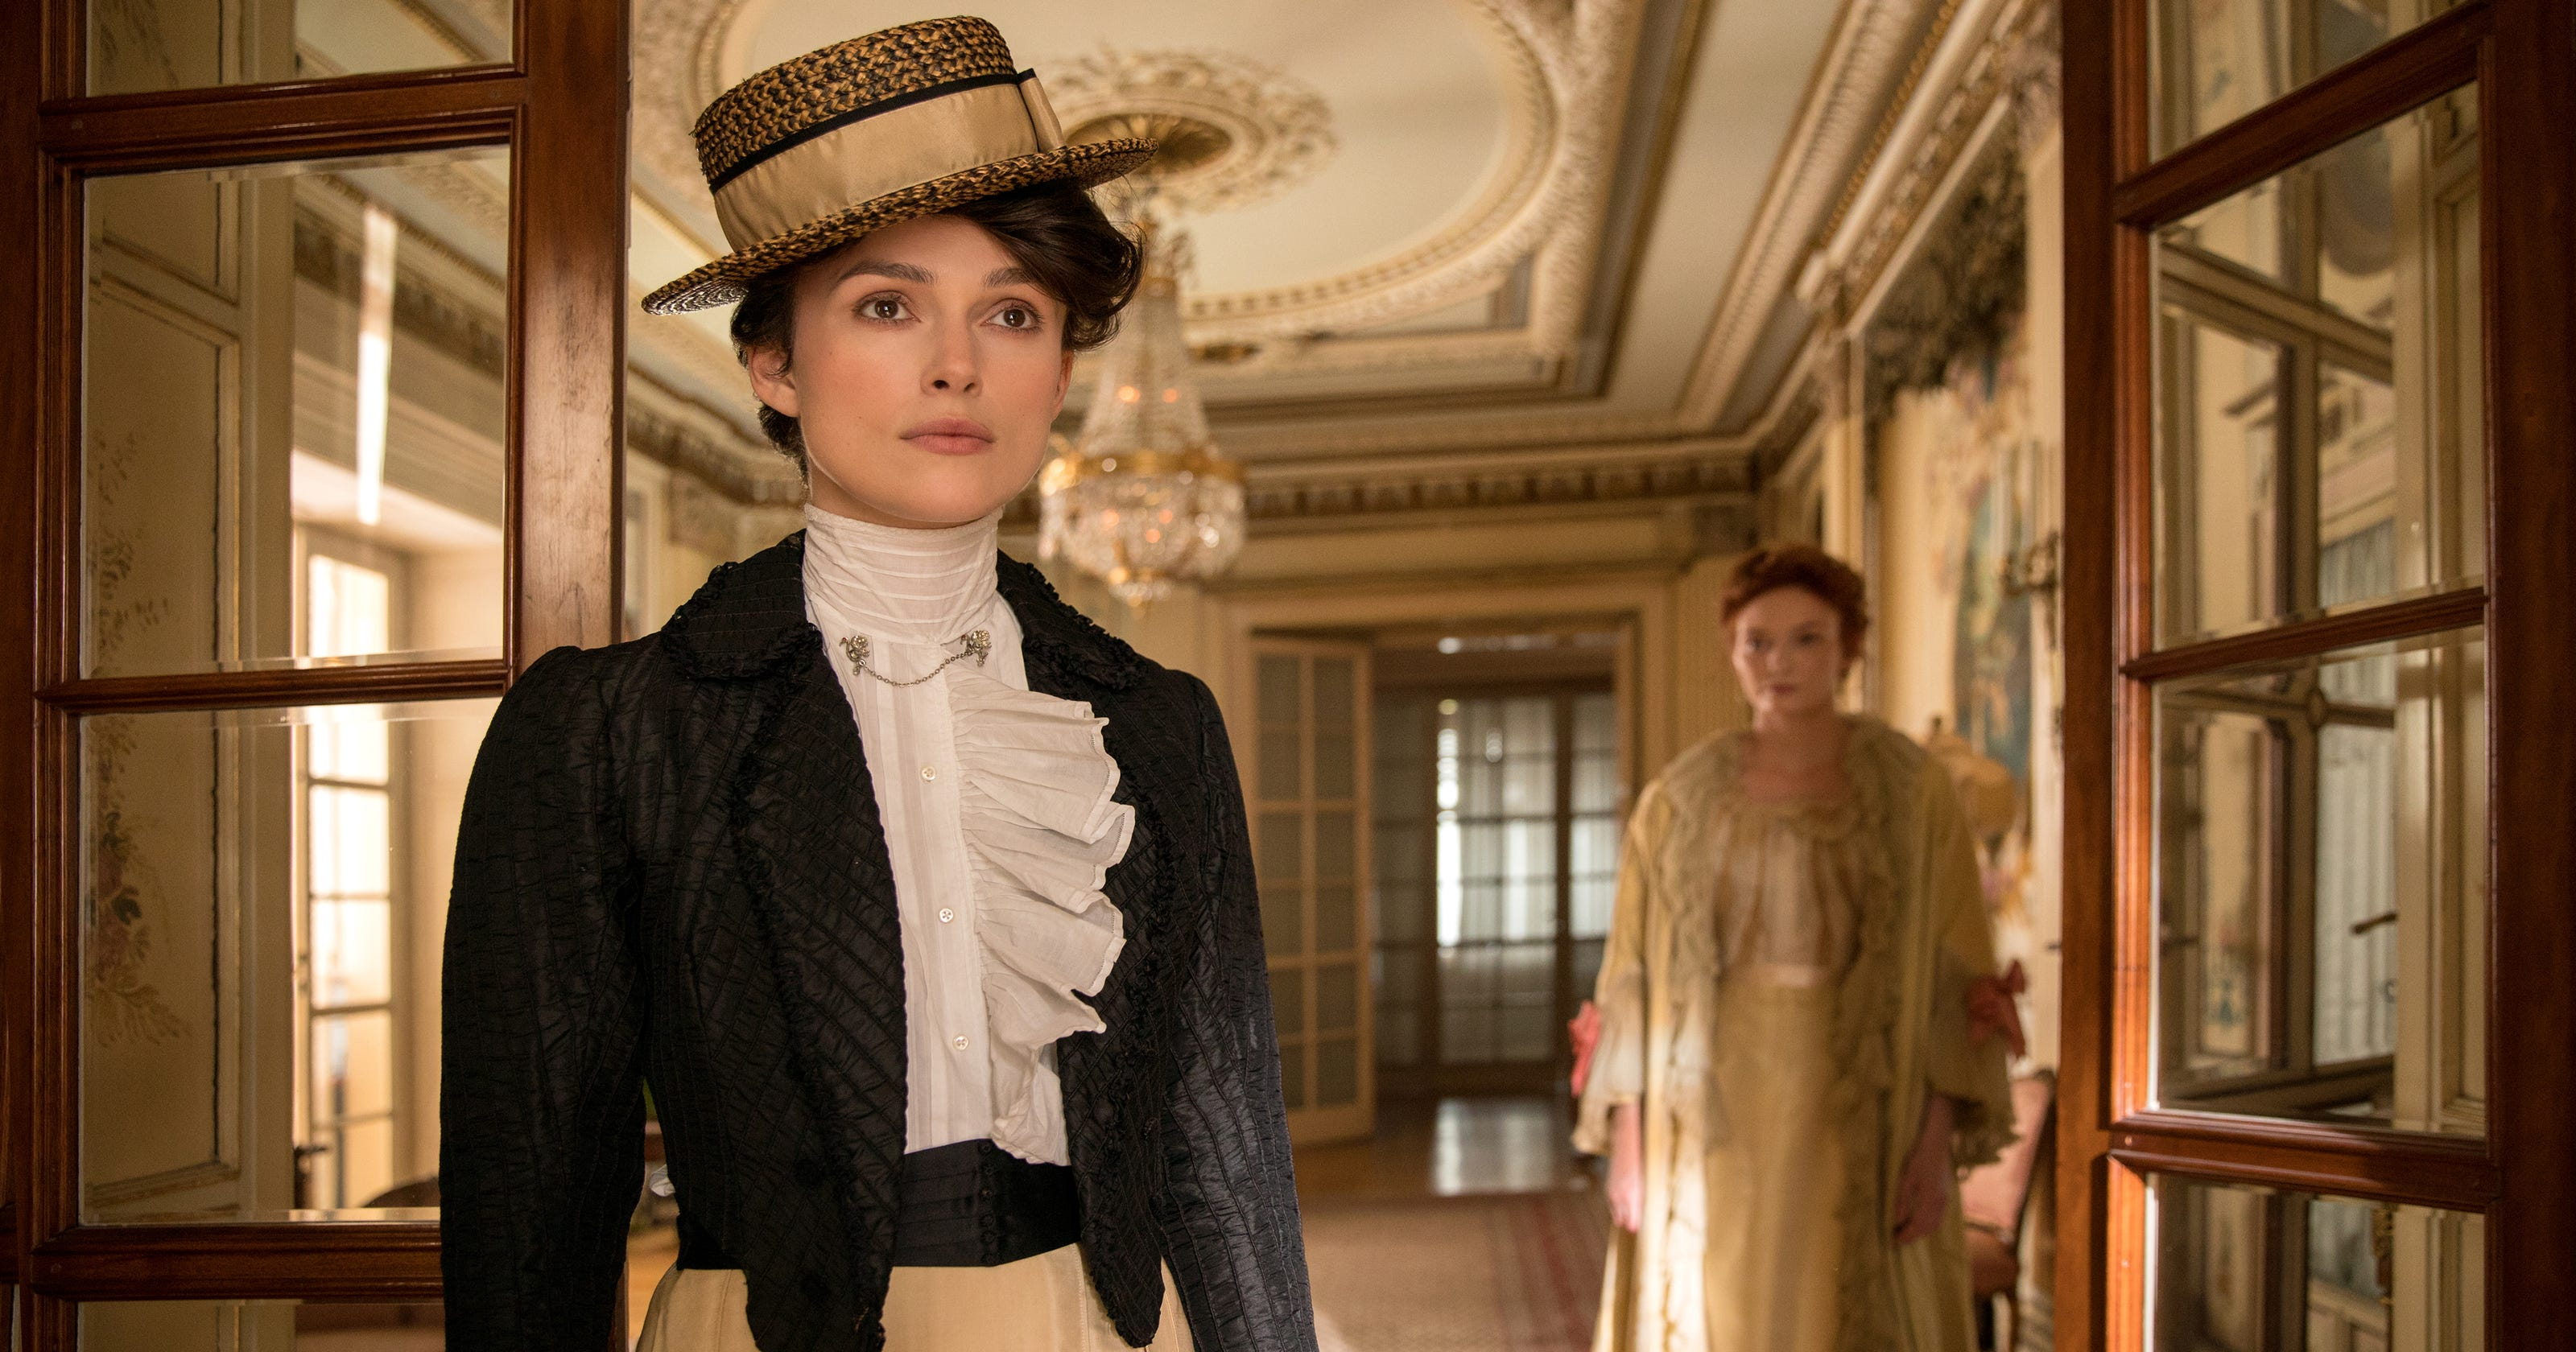 Review Colette Is Witty Drama With Oscar Level Material 12